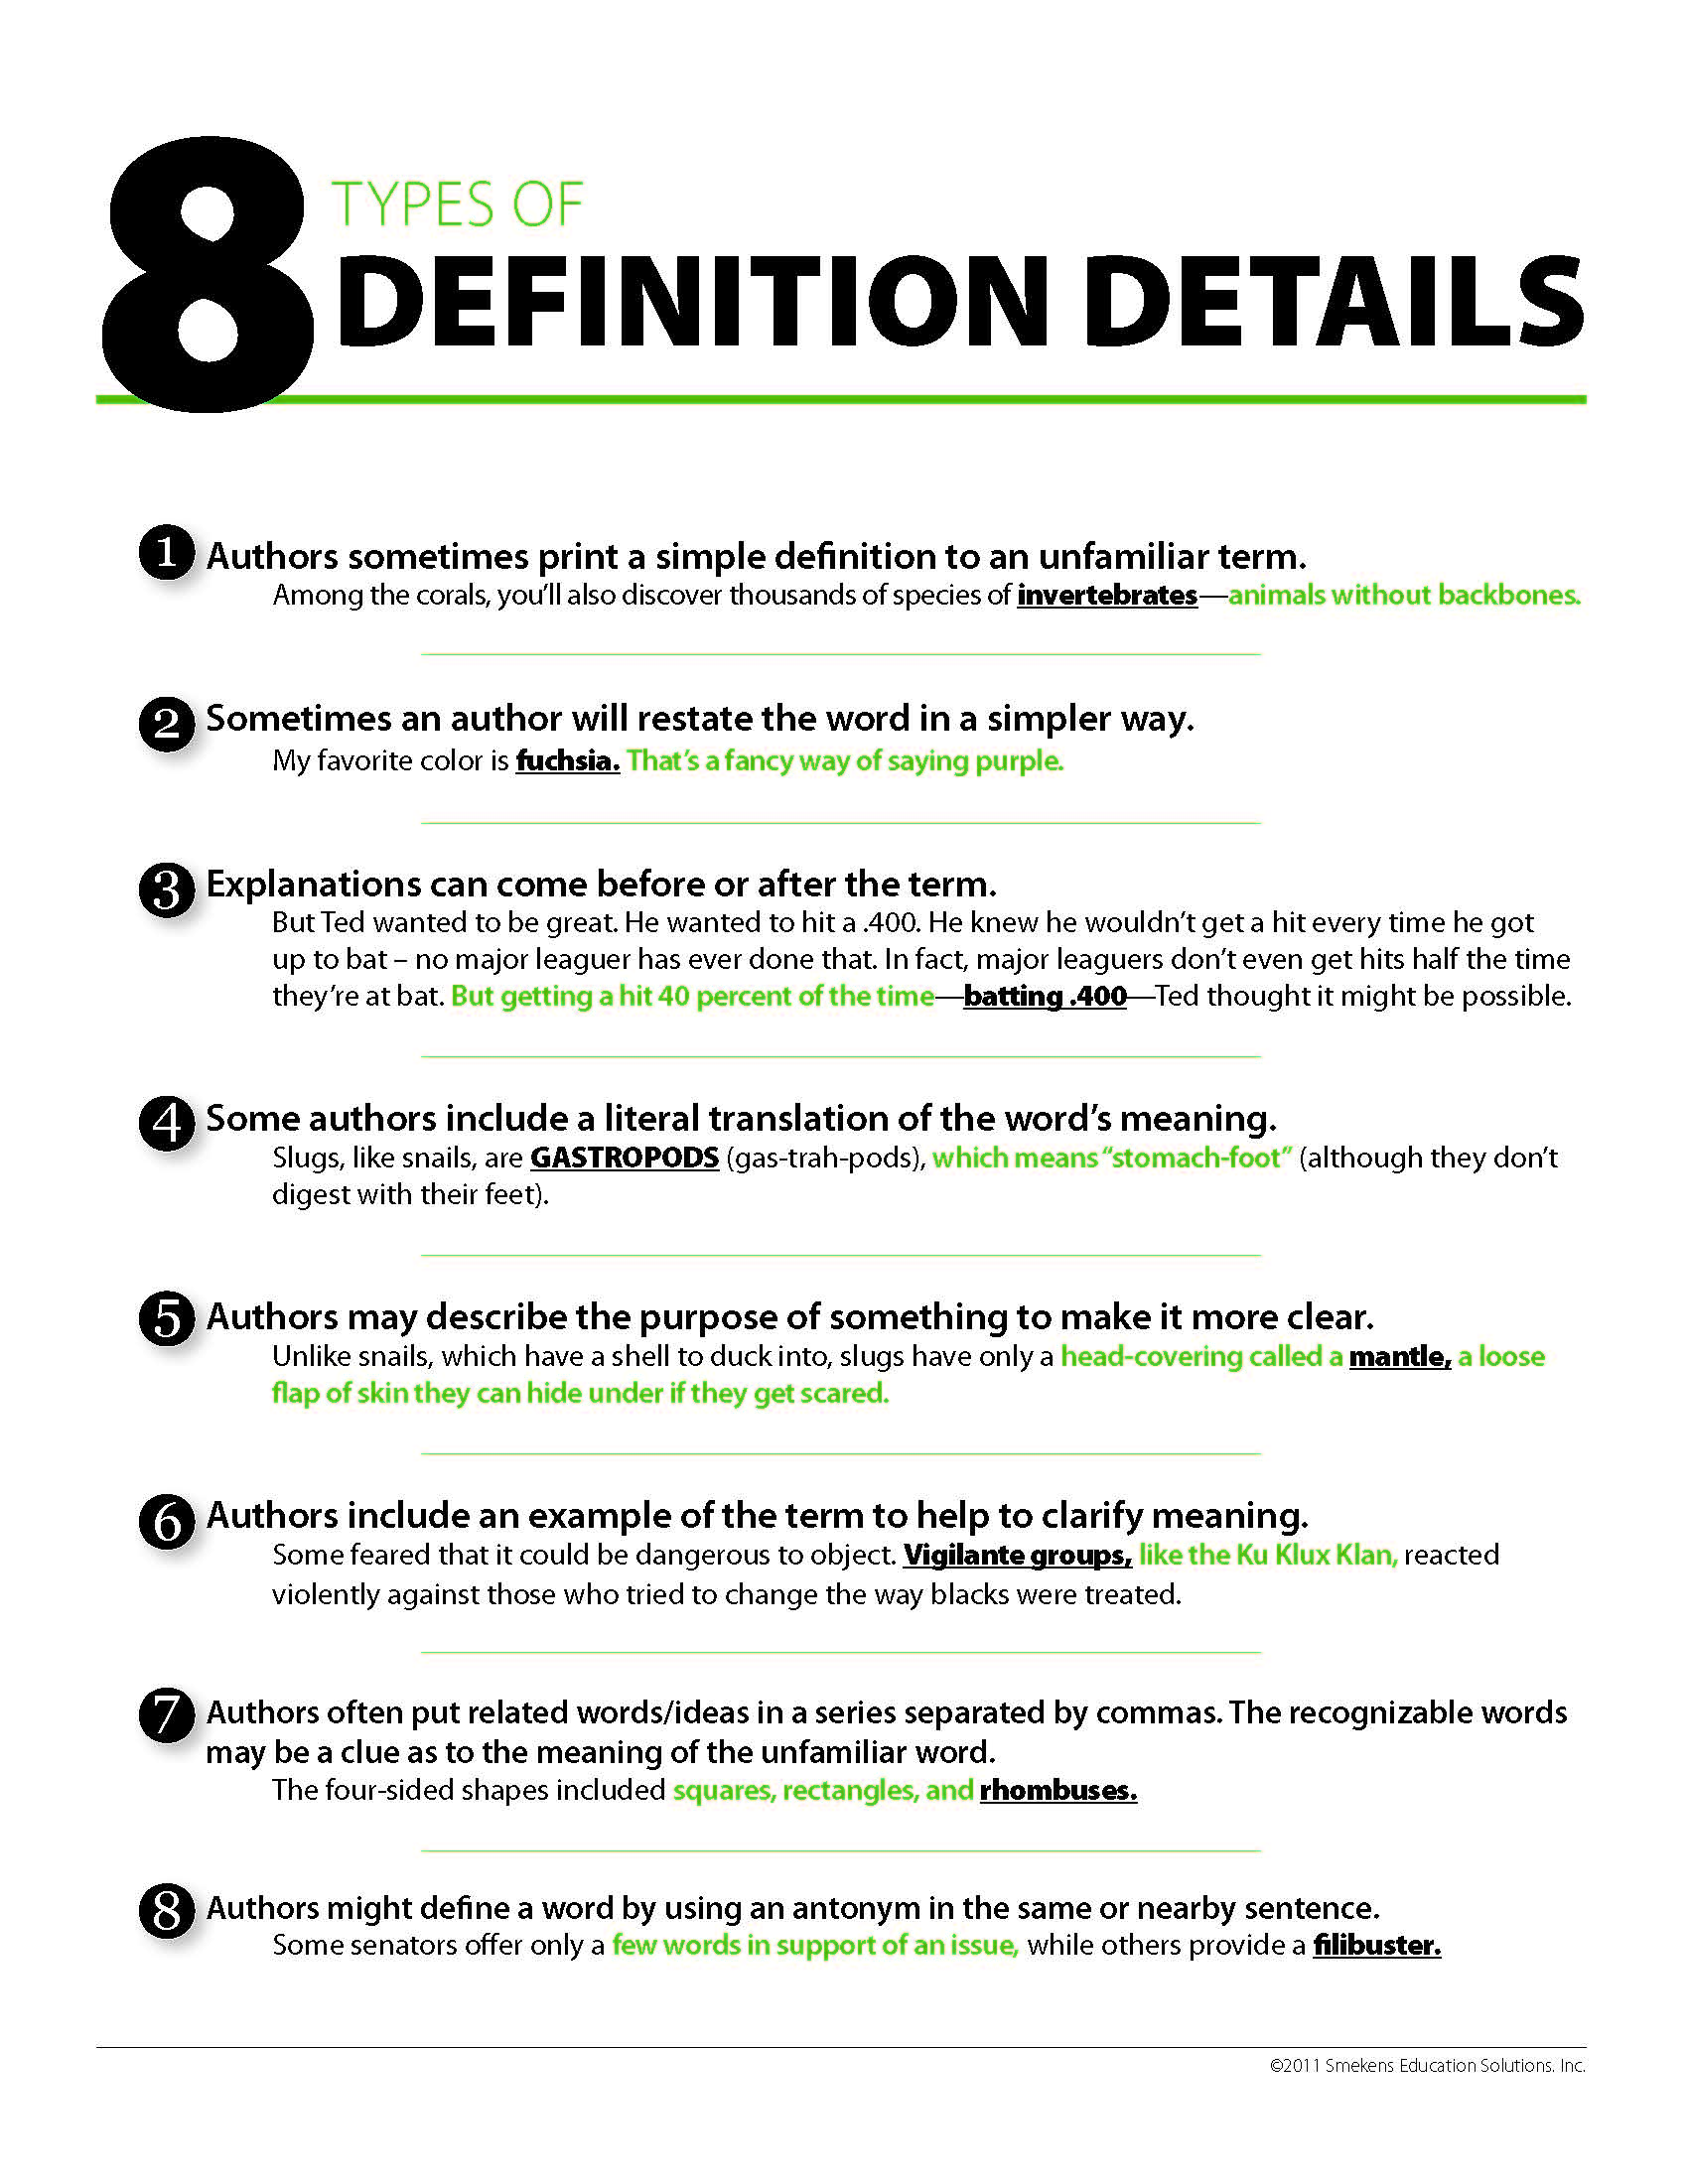 8 Definition Details to include in writing